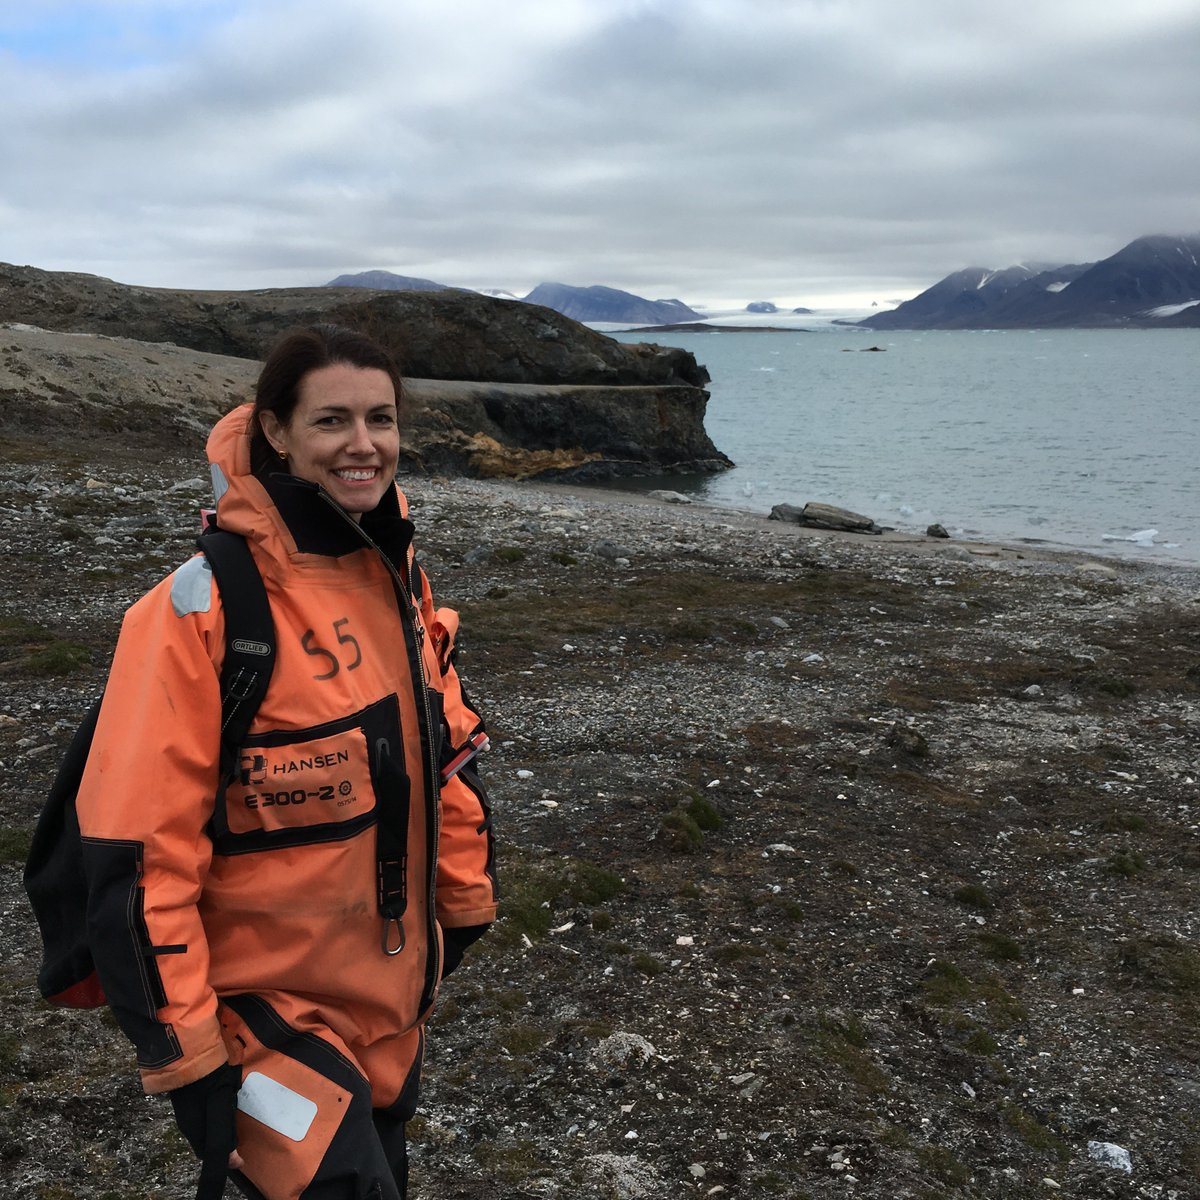 @UTKnoxville #microbiologist @archaearama travels to the world's most #inhospitable environments, like #volcanoes, the #Arctic and the #Andes, in search of microbes. Karen Lloyd might just be the Indiana Jones of science! Read more about her adventures: https://fcld.ly/914hqet